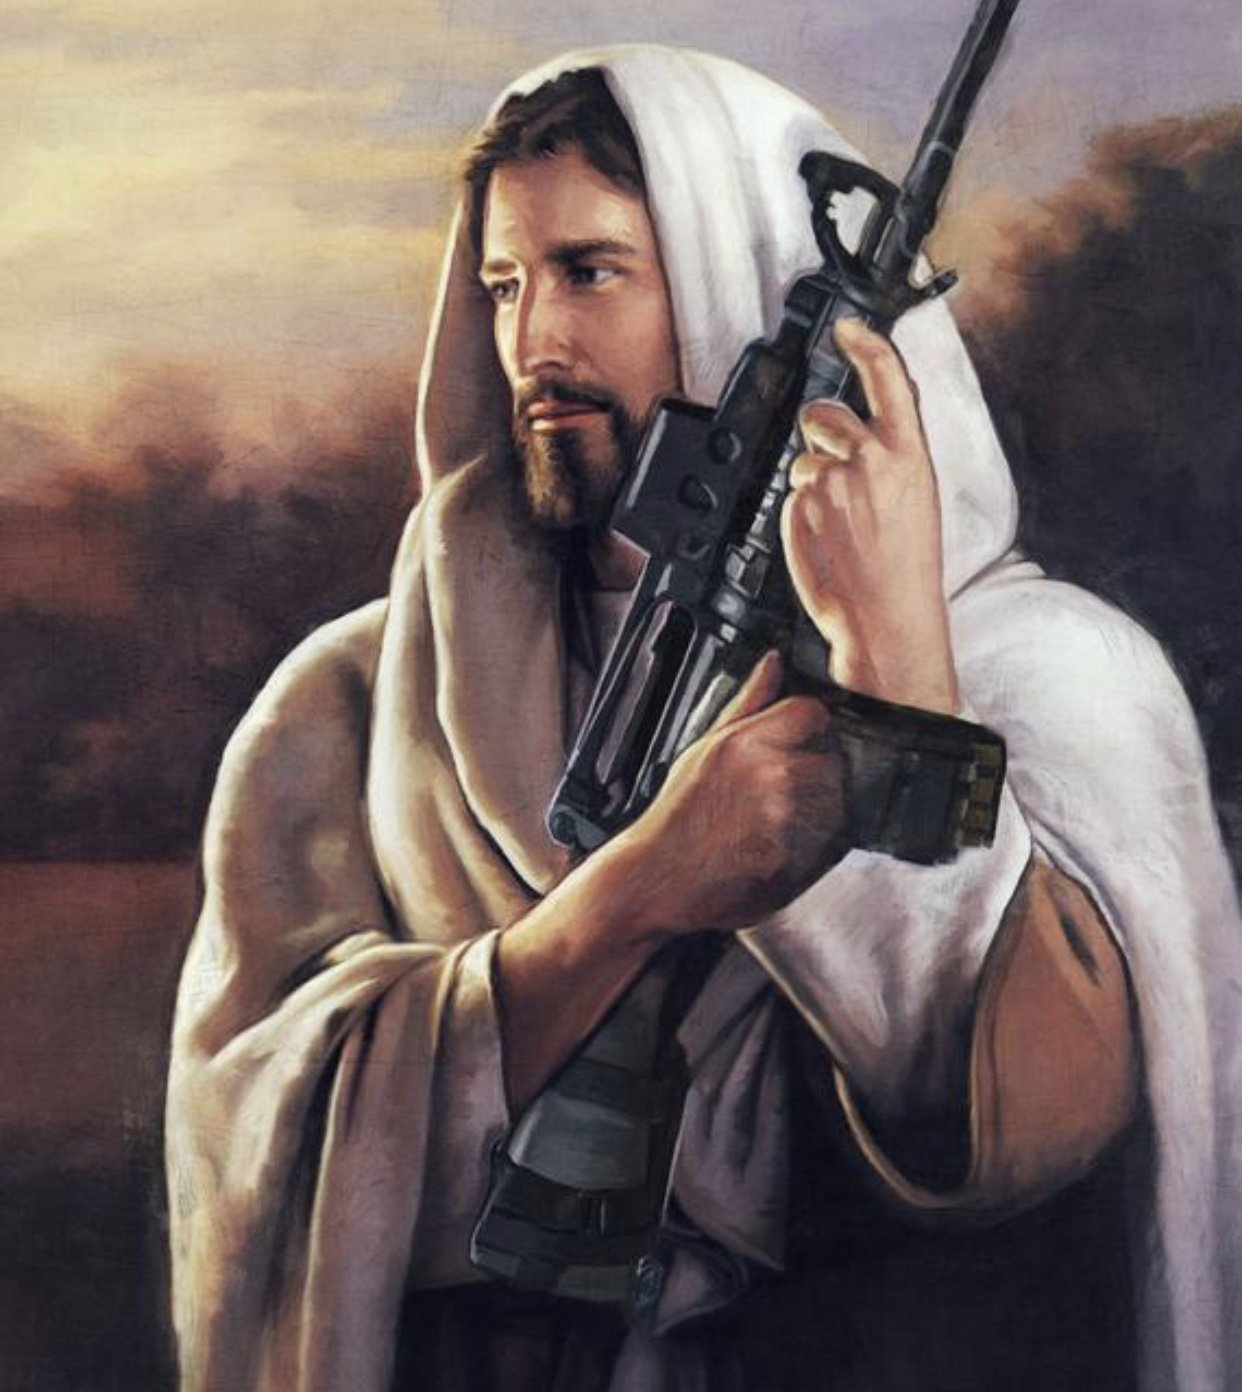 Governor Noem Announces Discovery of Lost Scripture In Which Jesus Uses Guns to Stop Illegal Immigration to US